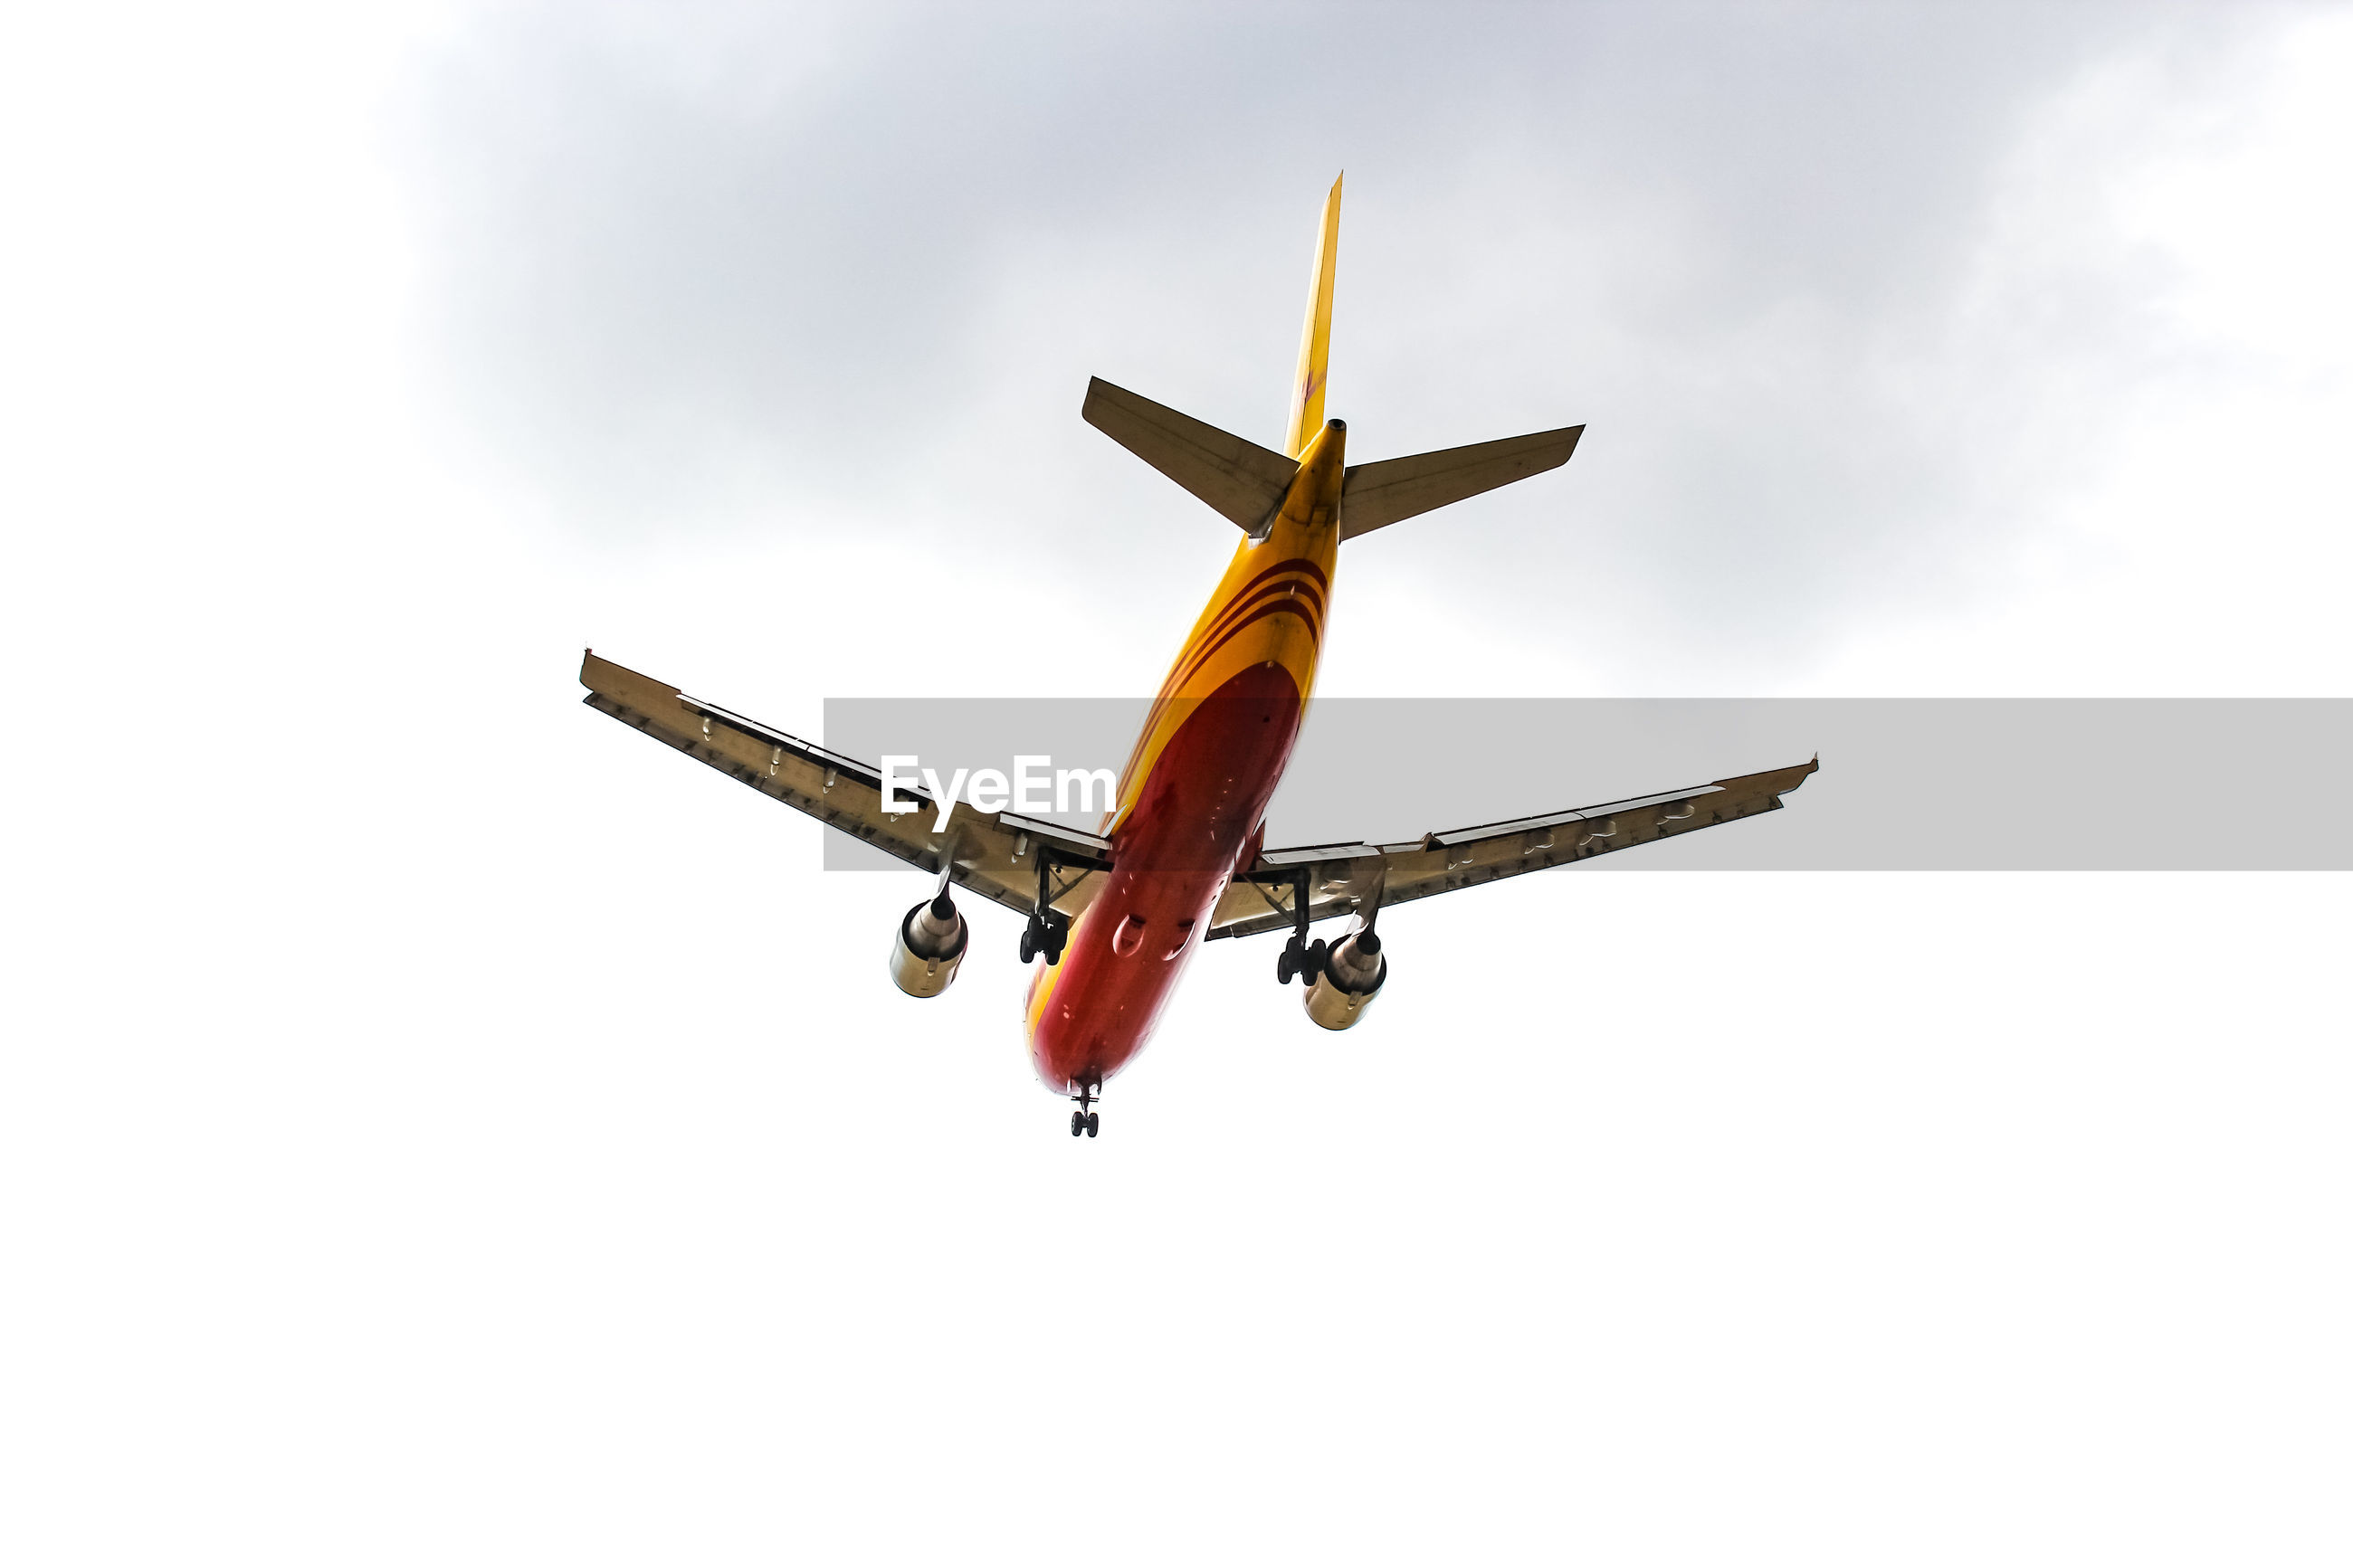 LOW ANGLE VIEW OF AIRPLANE IN MID-AIR AGAINST SKY